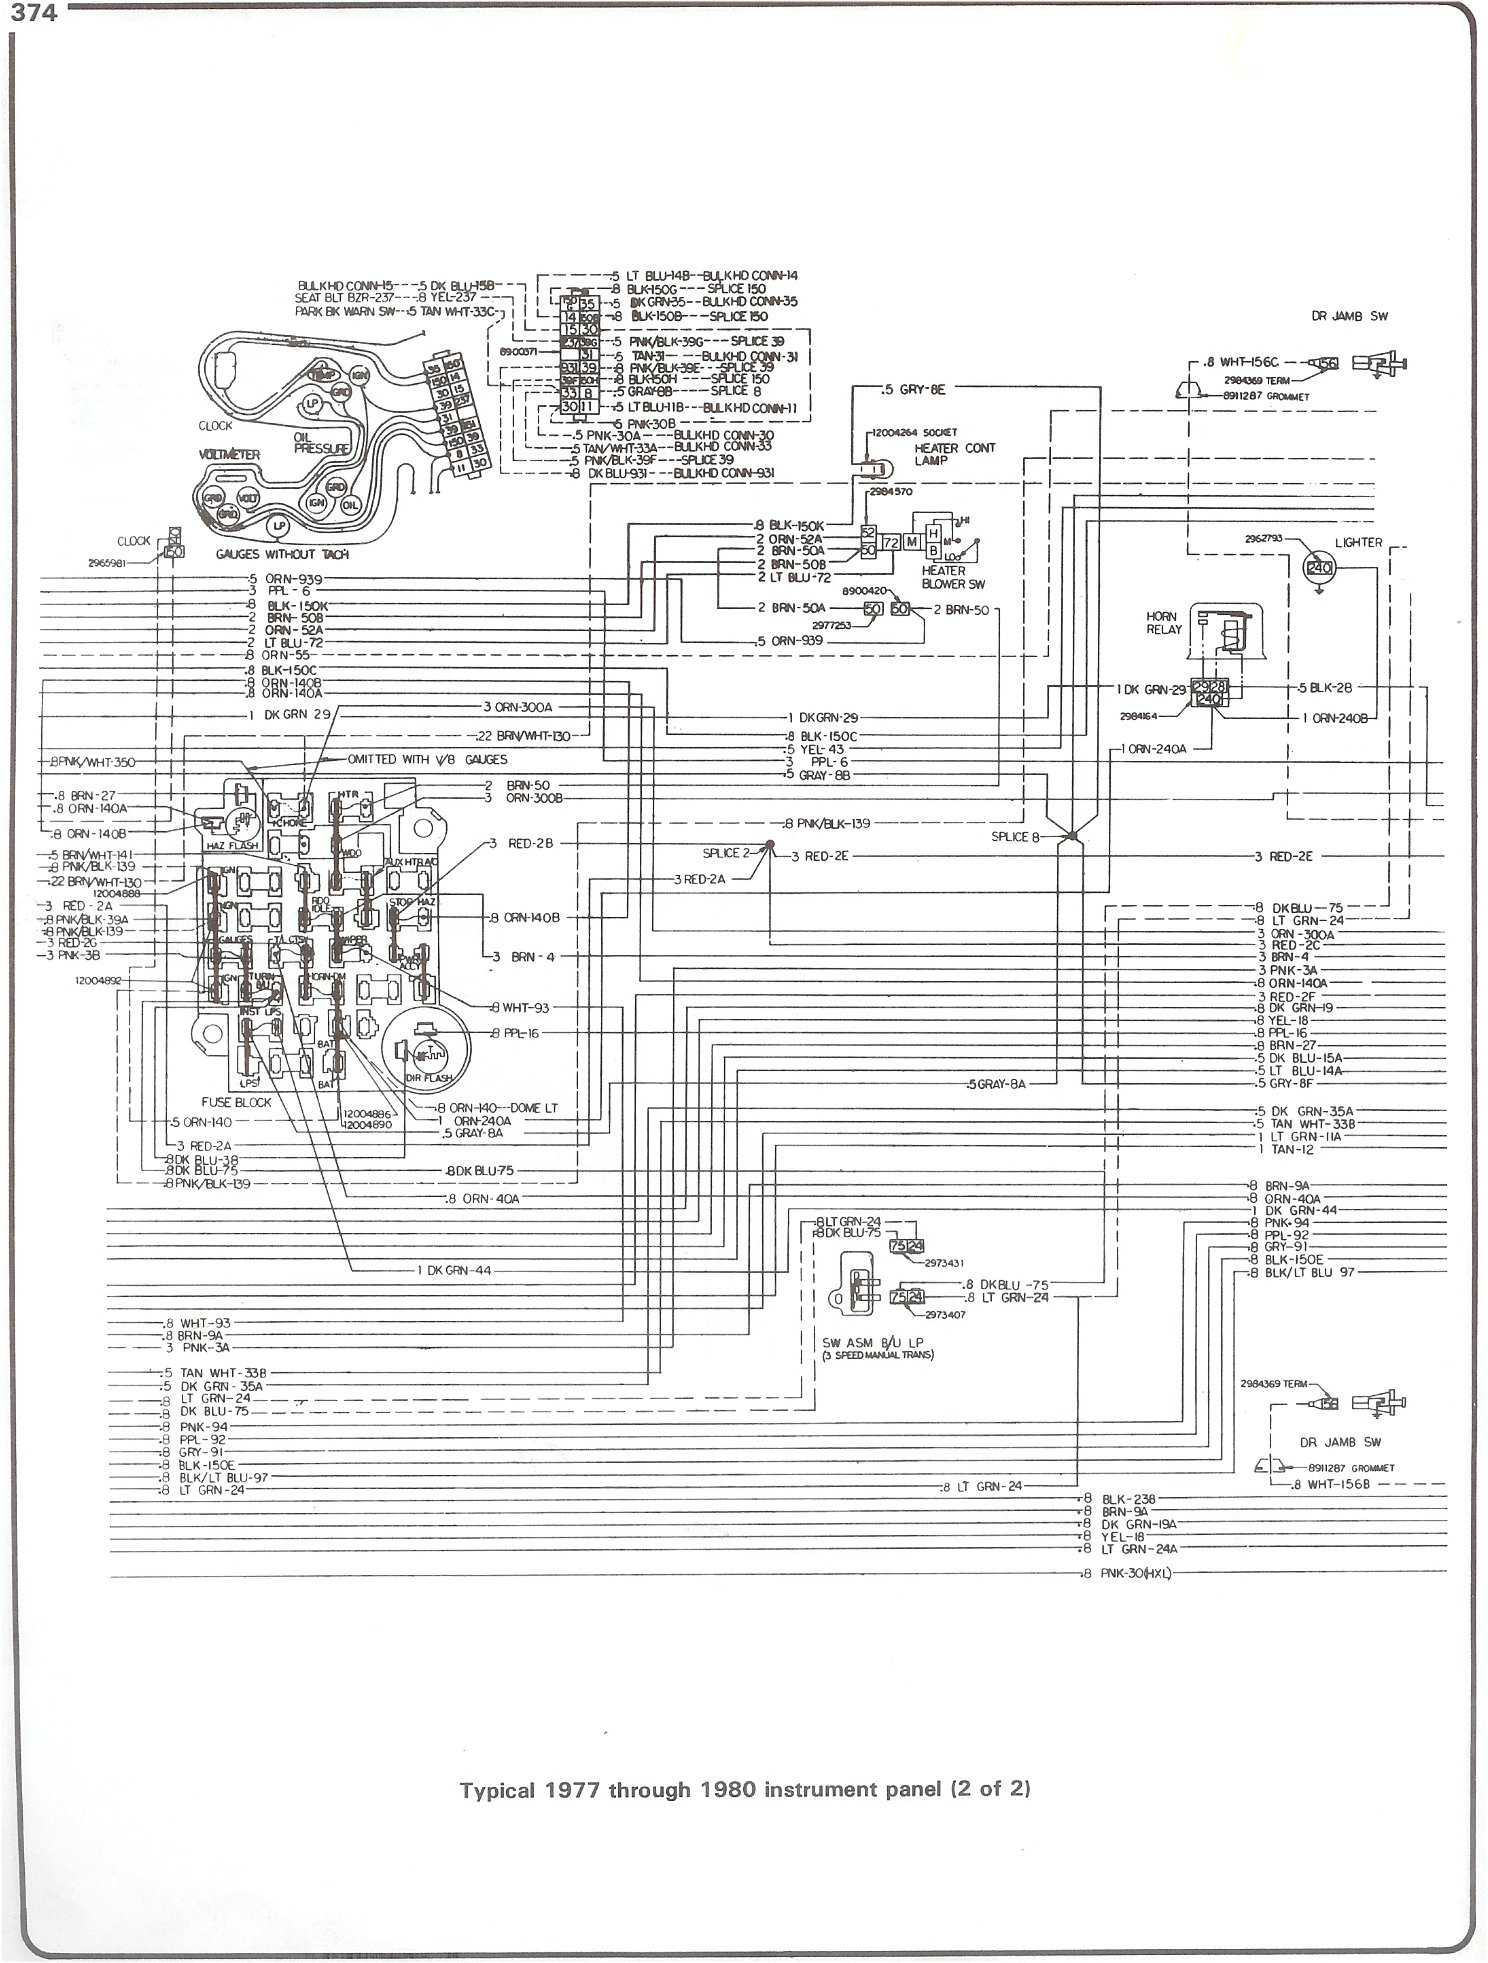 Speaker Wiring Diagram 1994 Suburban Factory 6 System Fuse For Chevy Truck 4x4 77 80 Intrument Panel Page 2